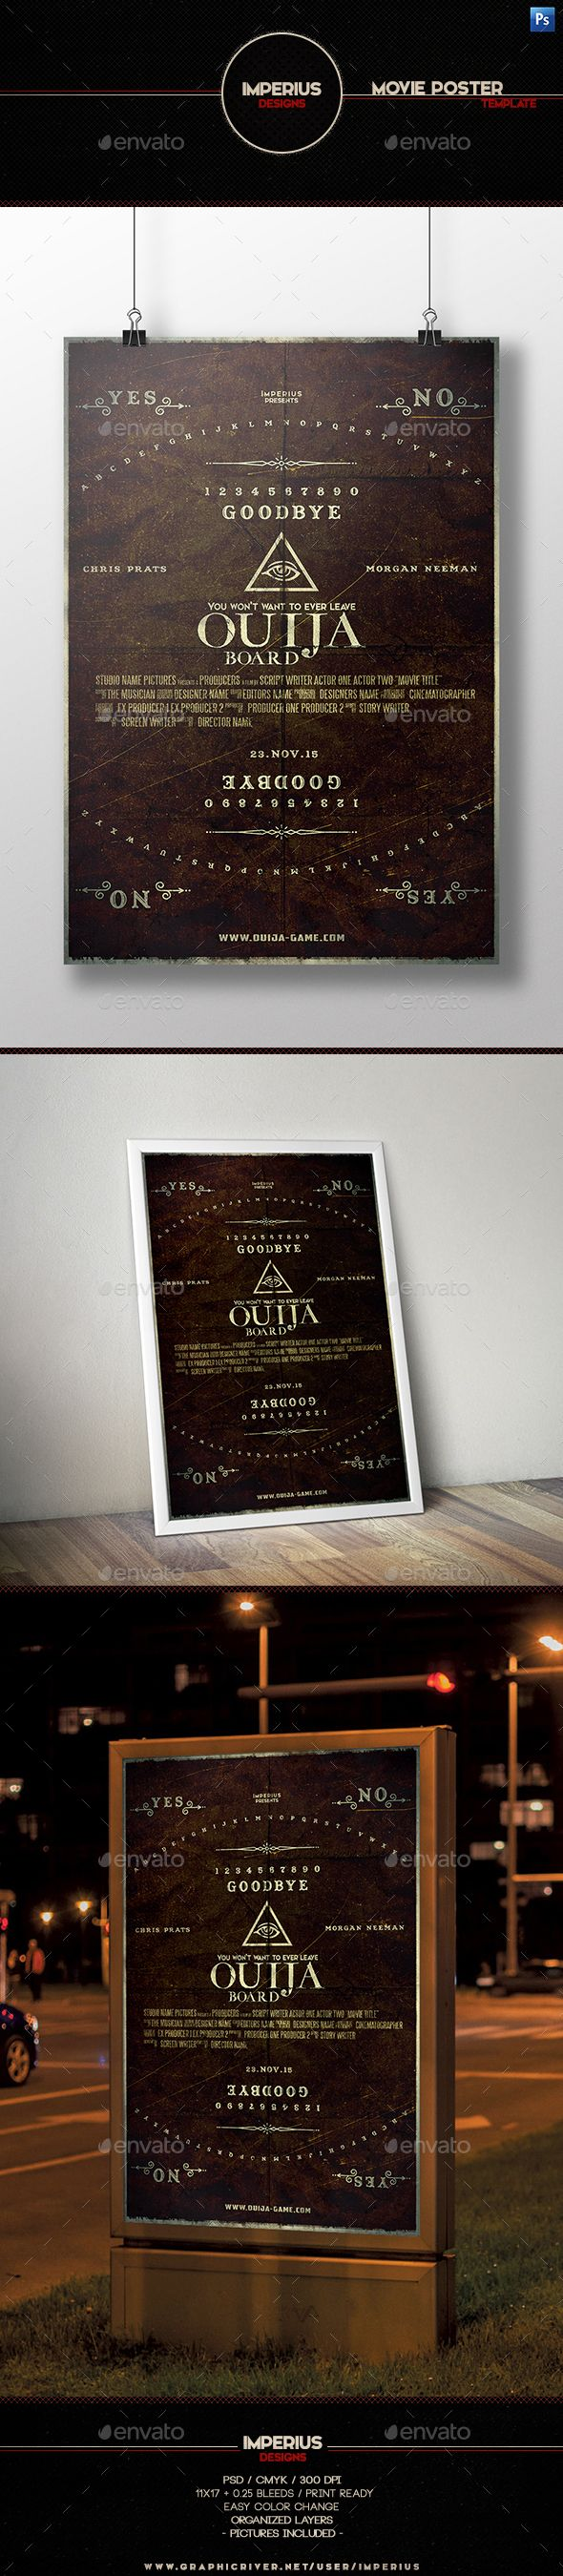 Ouija Board Movie Poster Template Features1117 025 Bleeds CMYK 300DPI Print Ready Organised Layers Easy Color Change Help FileFonts UsedAmerican